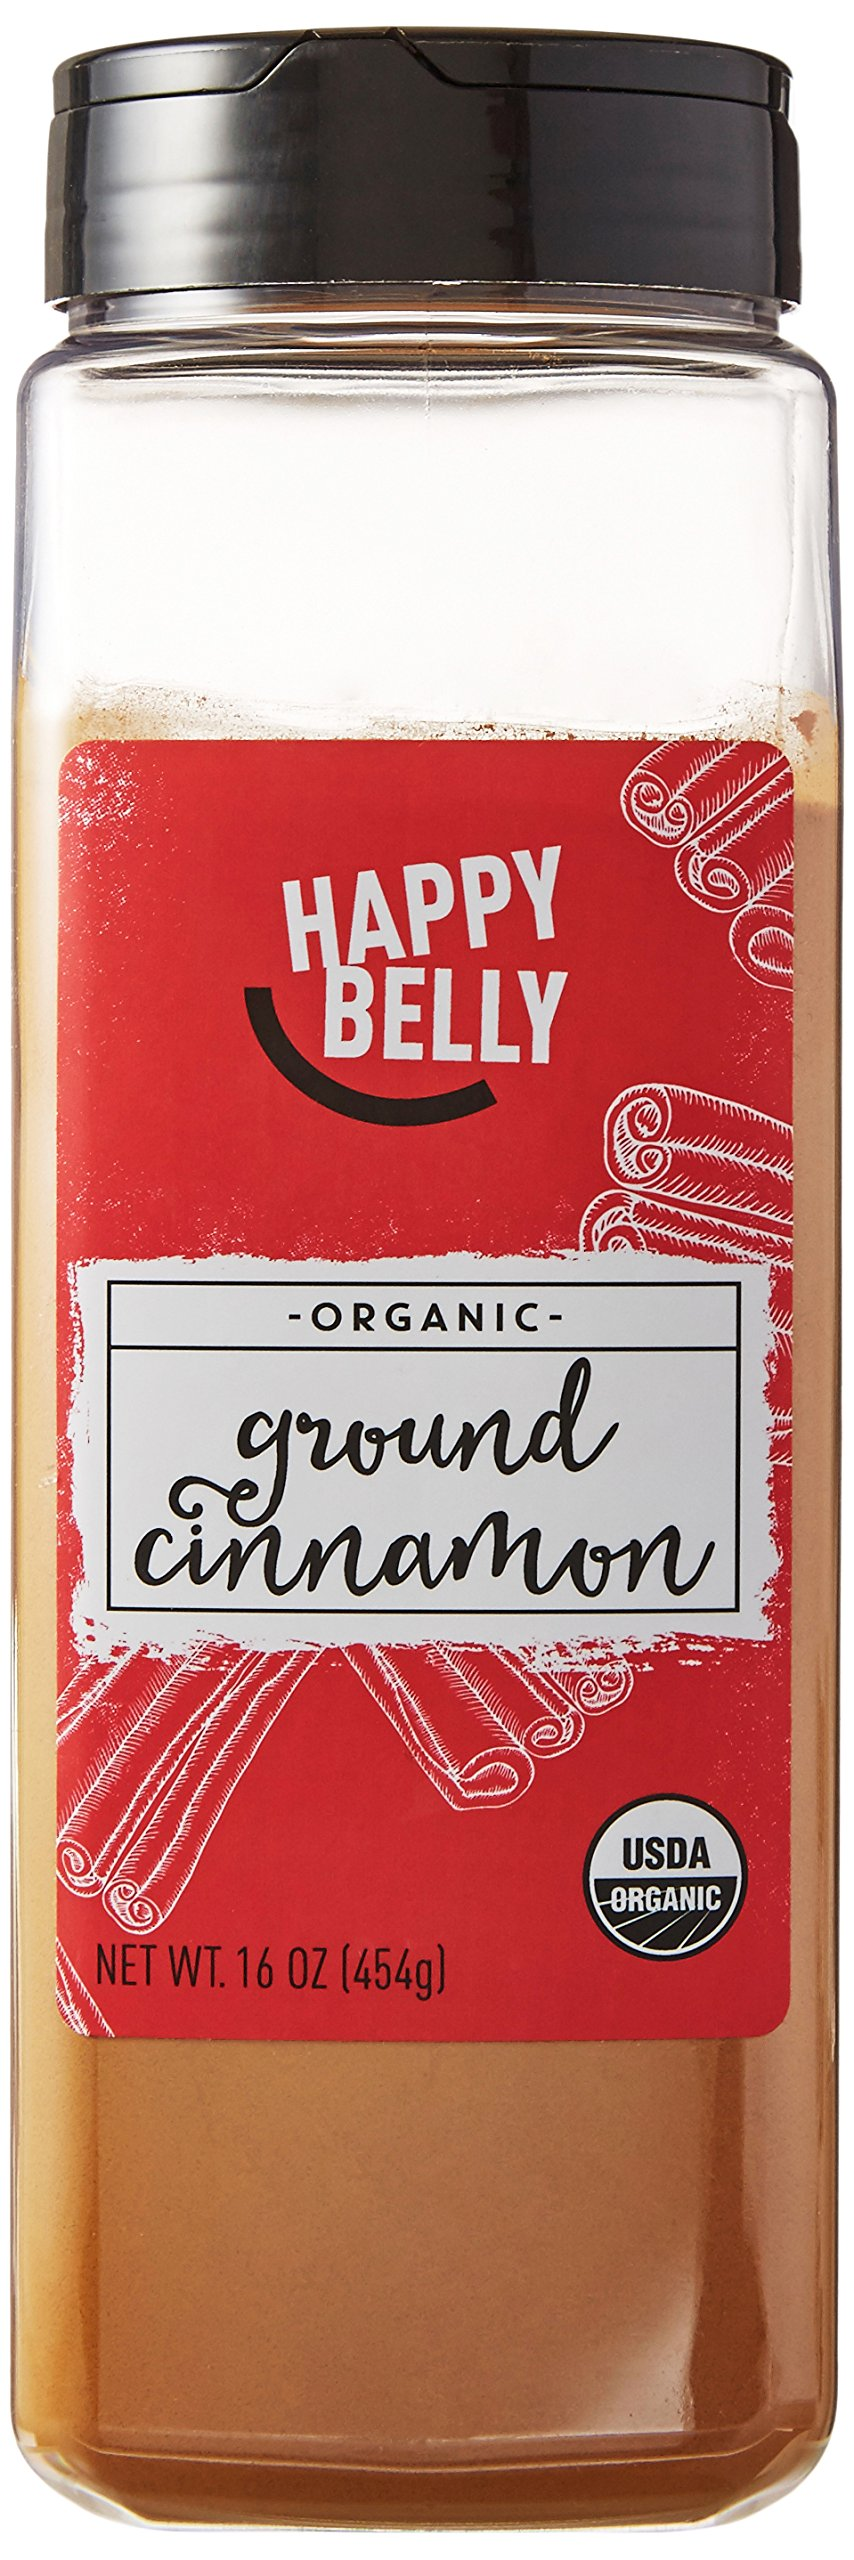 Amazon Brand - Happy Belly Organic Cinnamon, Ground, 16-Ounce